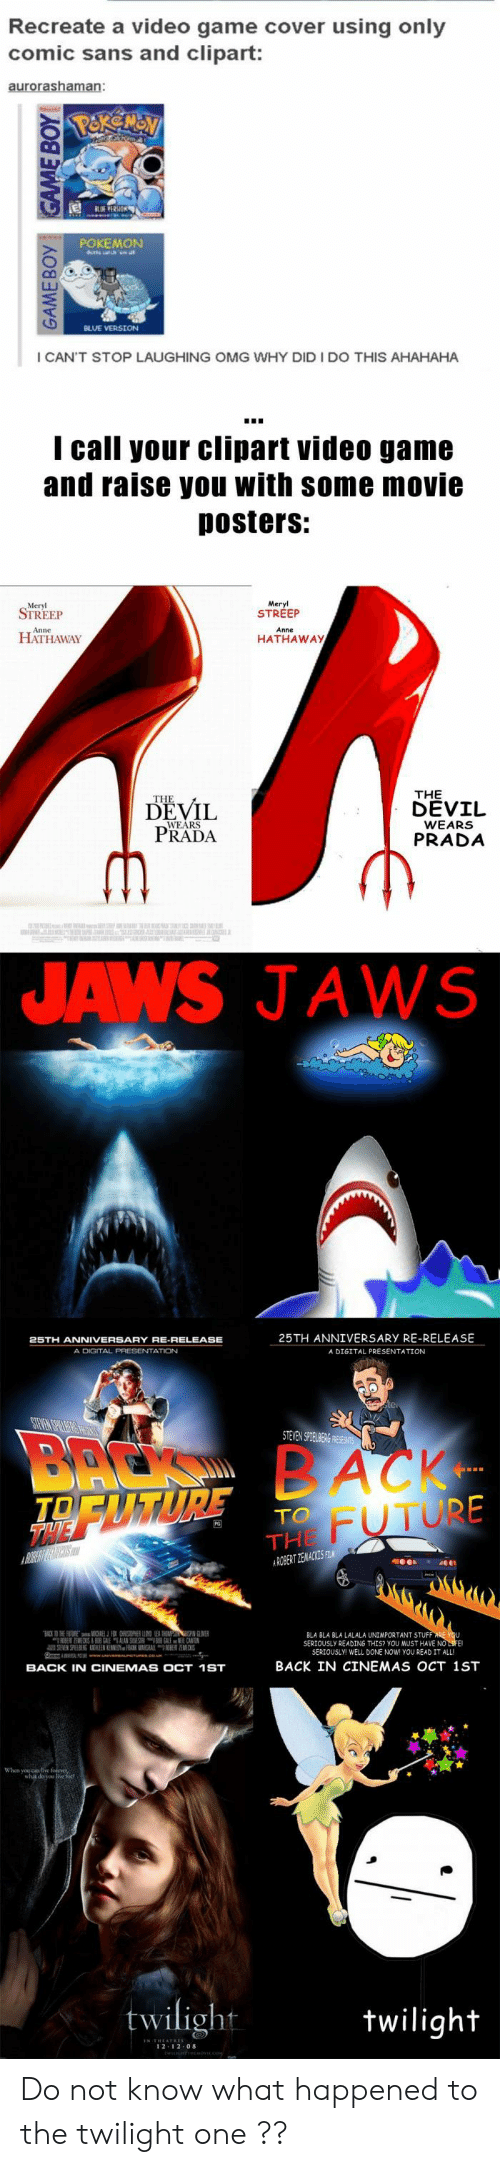 clipart: Recreate a video game cover using only  comic sans and clipart:  POKEMON  I CAN'T STOP LAUGHING OMG WHY DID I DO THIS AHAHAHA  I call your clipart video game  and raise you with some movie  Dosters:  Meryl  STREEP  STREEP  HATHAWAY  HATHAWAy  THE  DEVIL  DEVİL  PRADA  WEARS  PRADA  JAWS JAWS  25TH ANNIVERSARY RE-RELEASE  A DIGITAL PRESENTATION  A DIGITAL PRESENTATION  STEVENS TEABi  FUTURE  TO  THE  益NER  BLA BLA BLA LALALA UNİMPORTANT STUF  SERJOUSLY READING THES? YOU MUST HAVE NO  SERIOUSLY WELL DONE NOW YOU READ IT ALL  BACK IN CINEMAS OCT 1ST  BACK IN CINEMAS OCT 1ST  twilight  wiligh  2 12 0 Do not know what happened to the twilight one ??